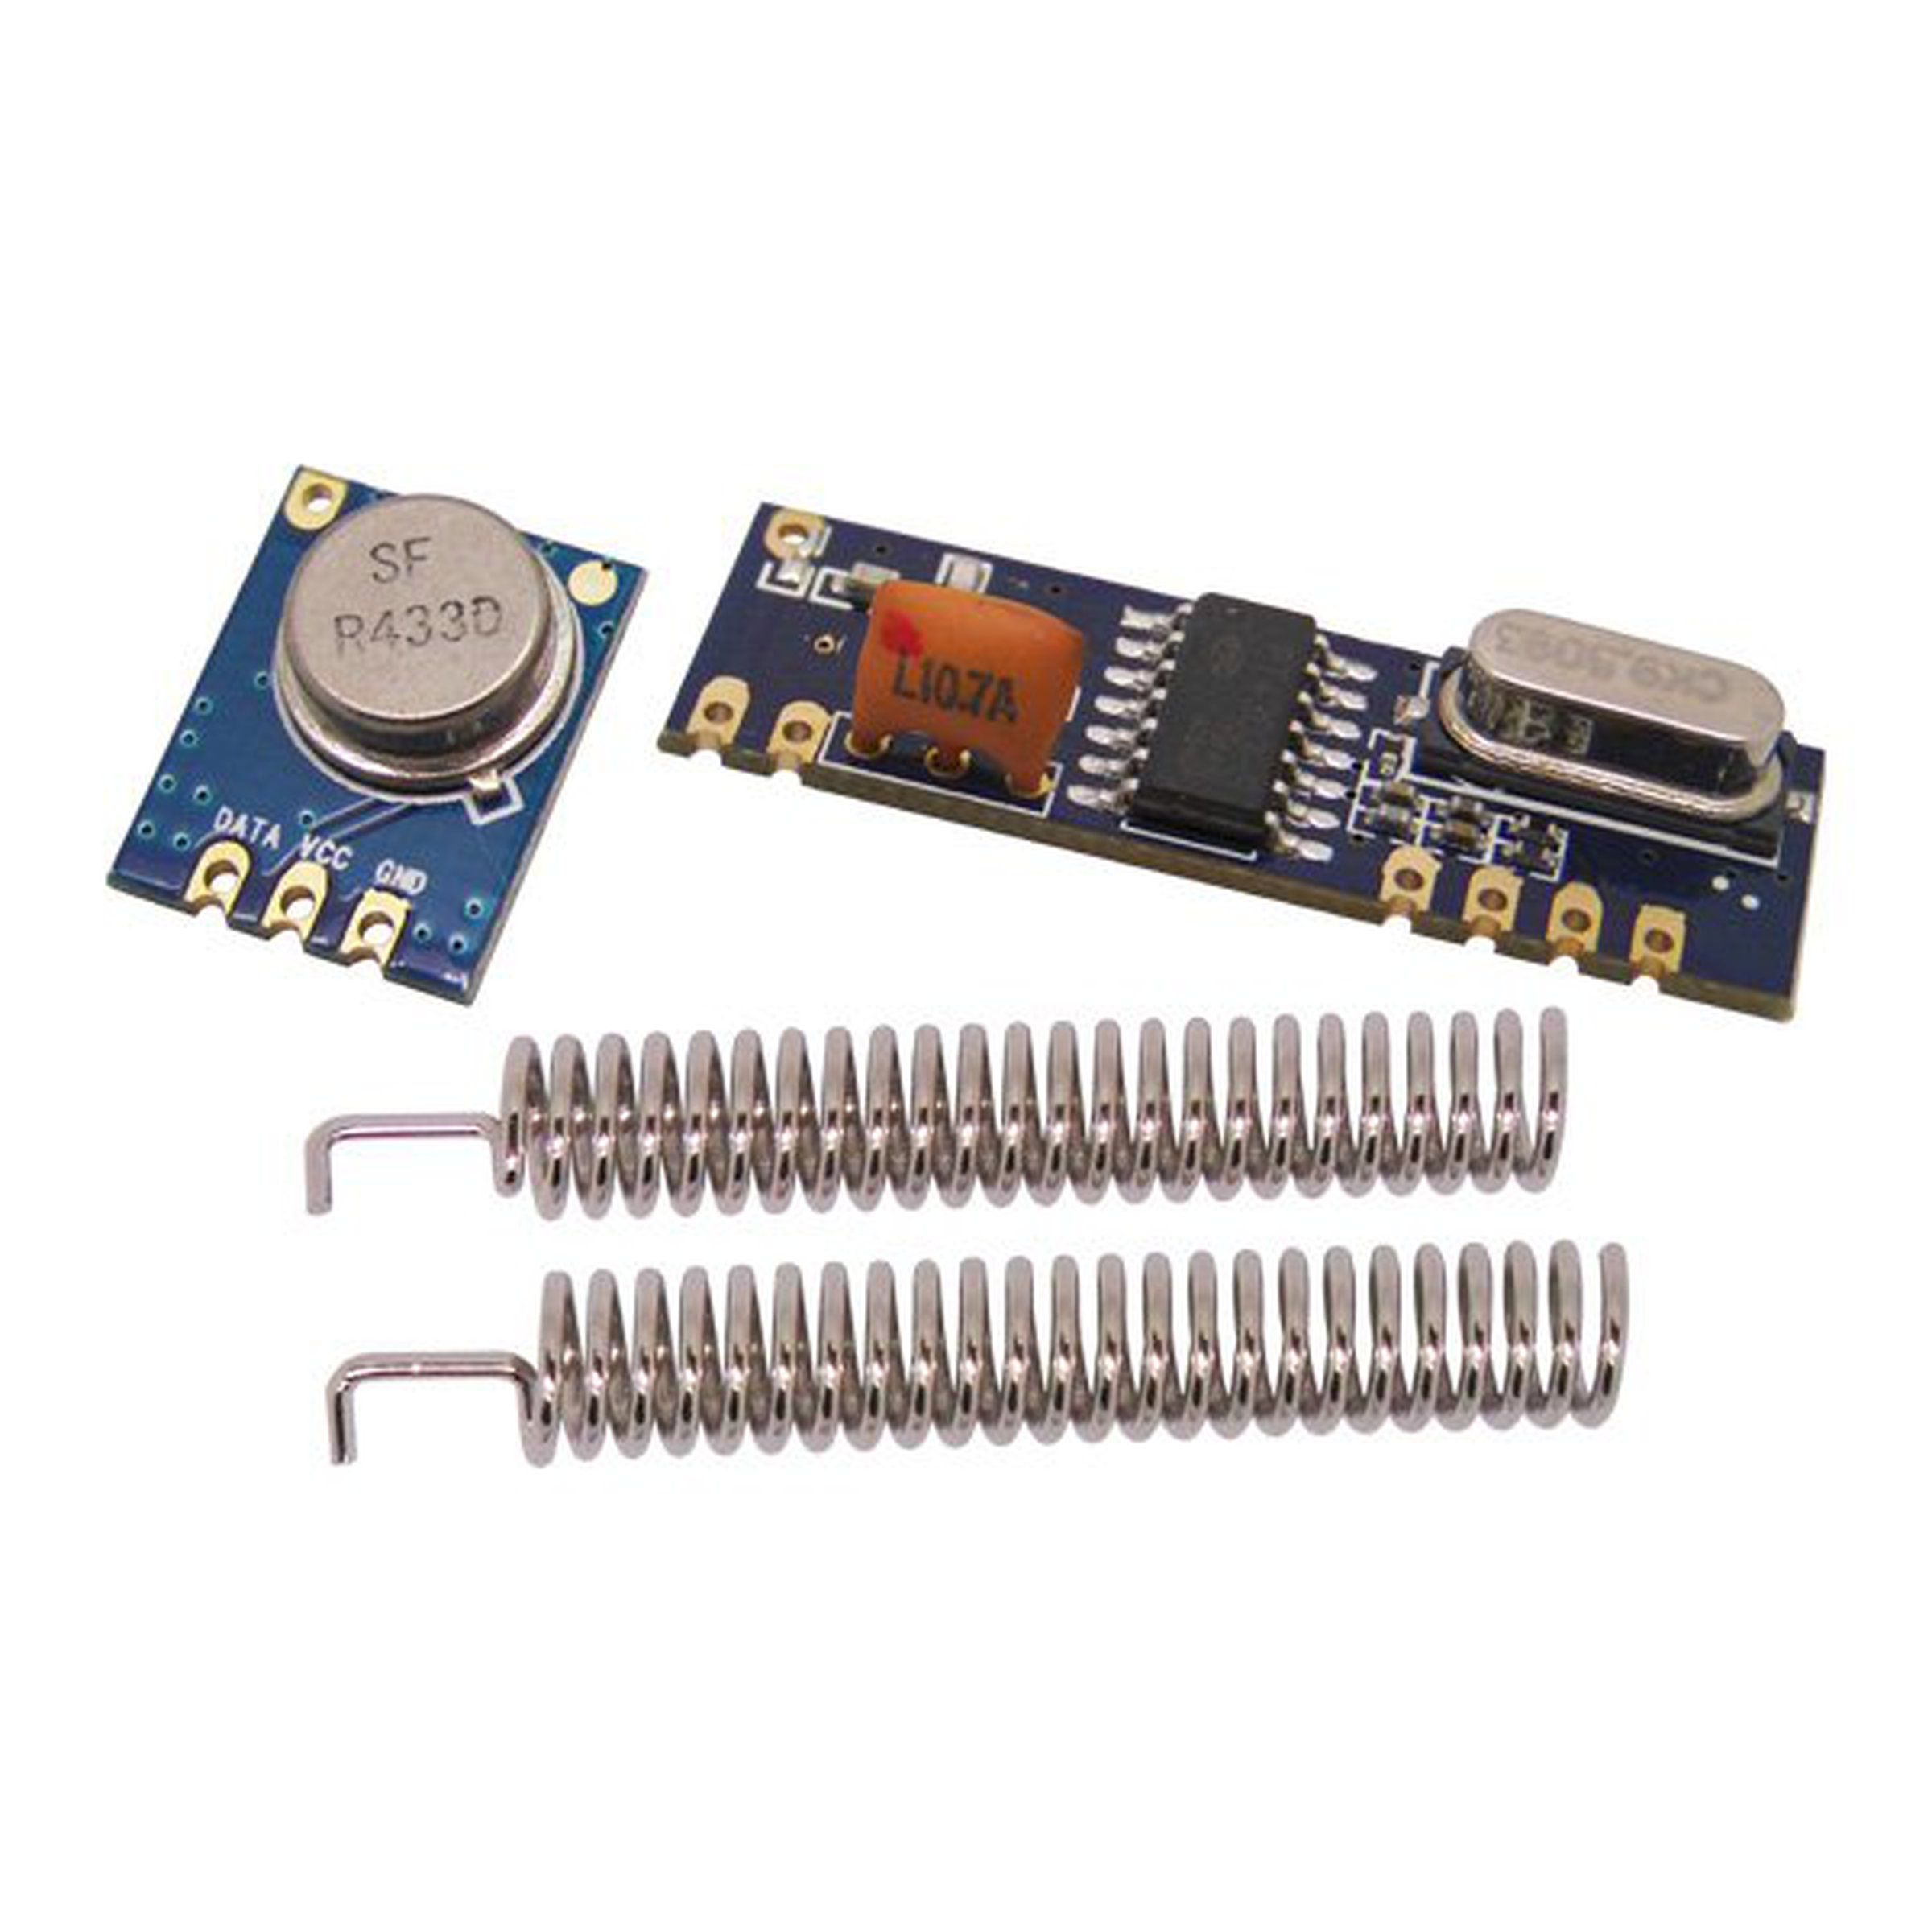 Kits On Tindie Fm Transmitter Circuit 6 Electronic Breadboard Layout Sale 433 315 Mhz Ask Receiver Module Kit